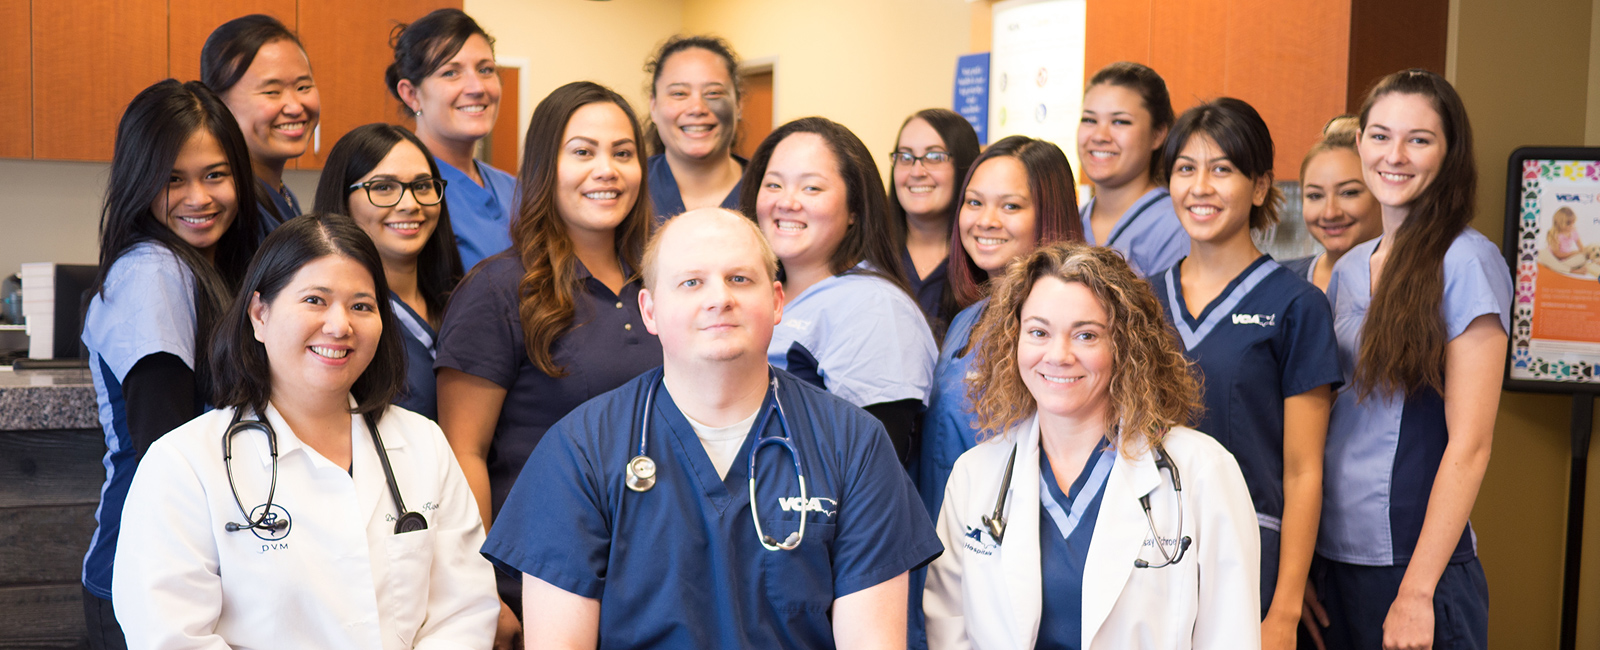 Team Picture of VCA Kapolei Animal Hospital